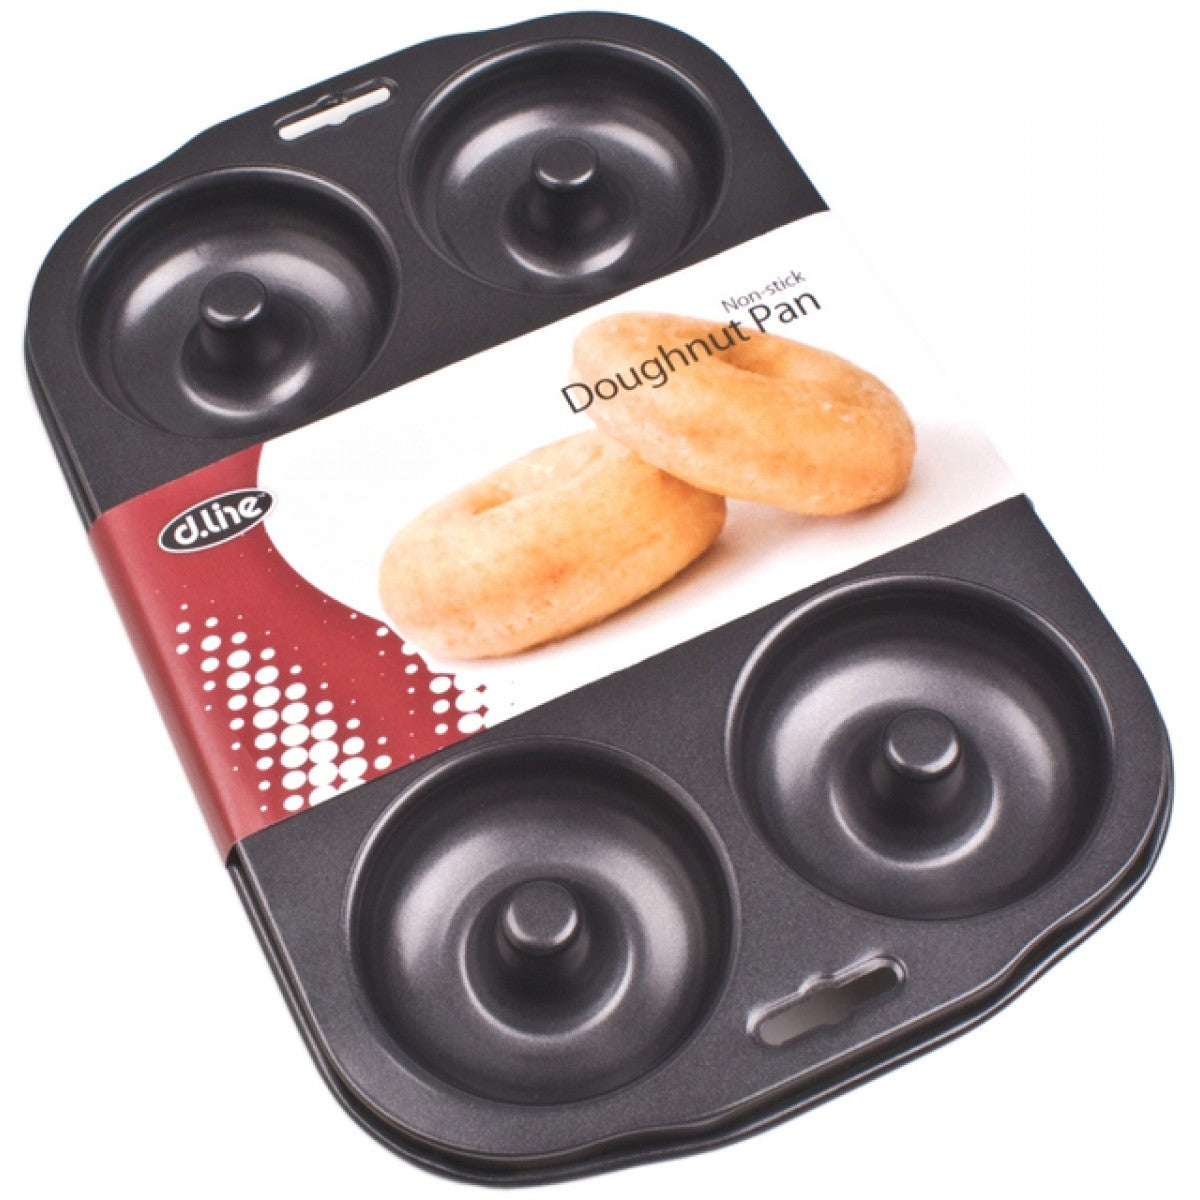 Dline Donut Pan 6 Cup